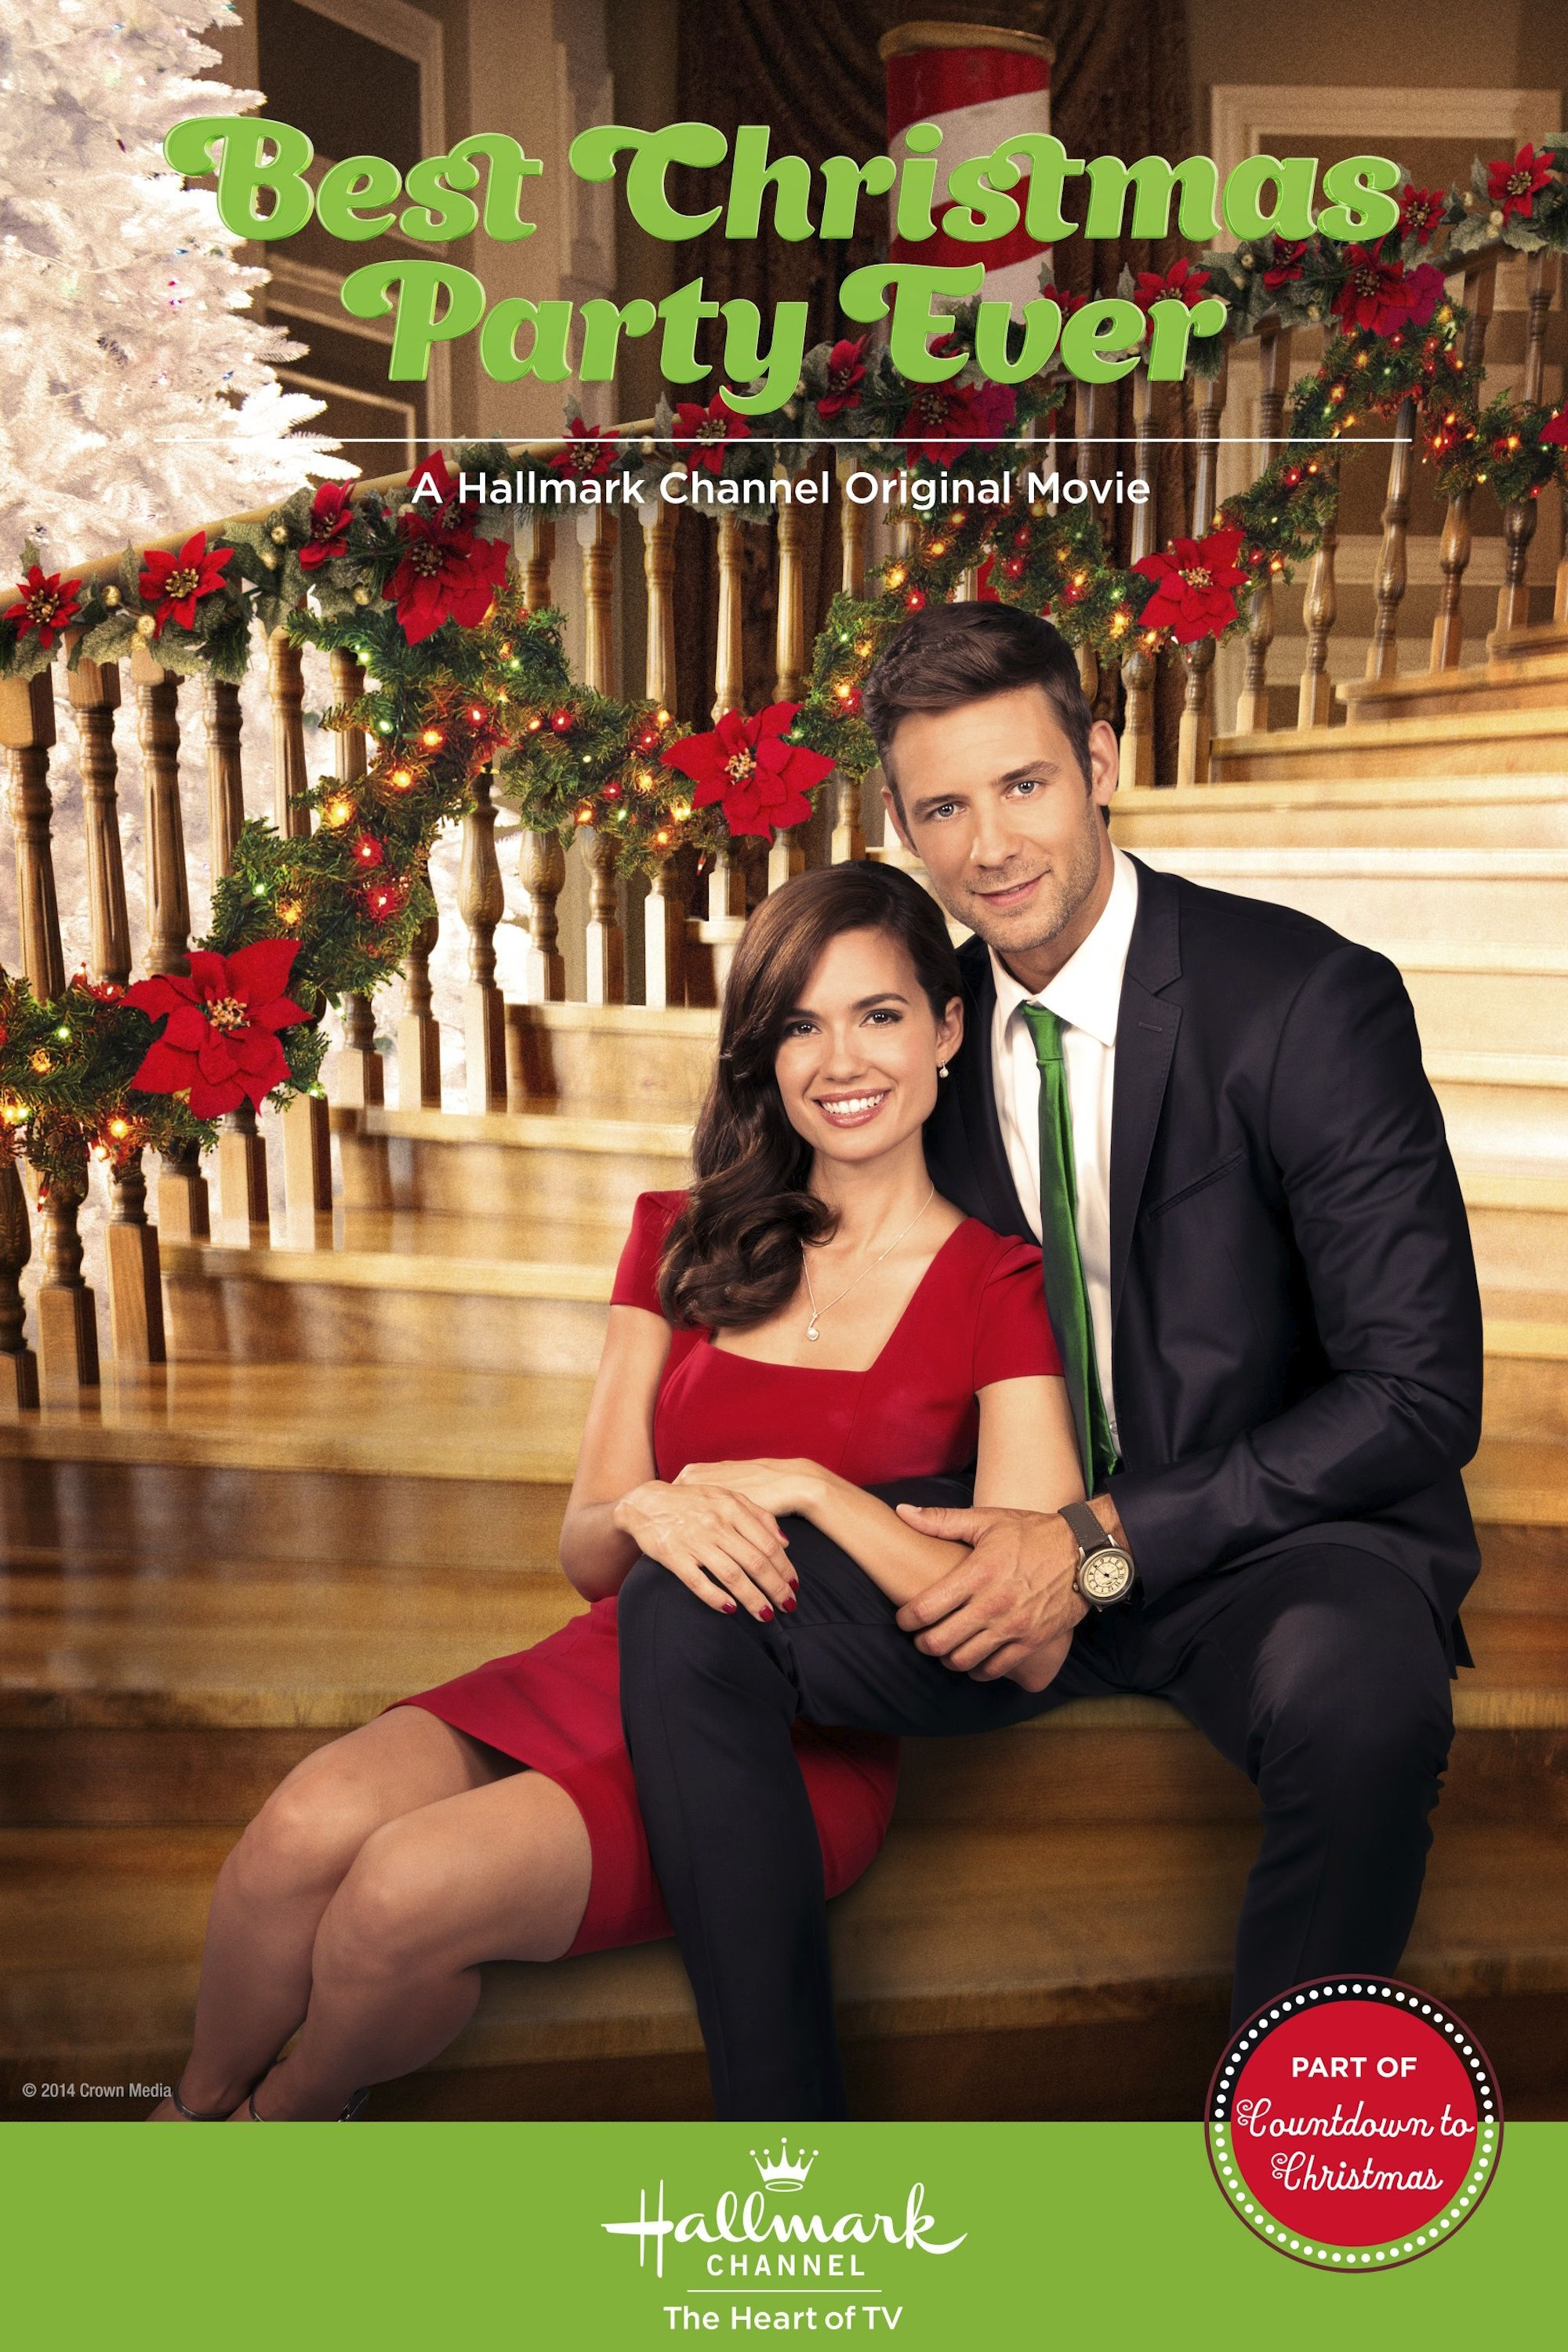 the best hallmark channel christmas movies countdown to christmas tv movies - Best Hallmark Christmas Movies